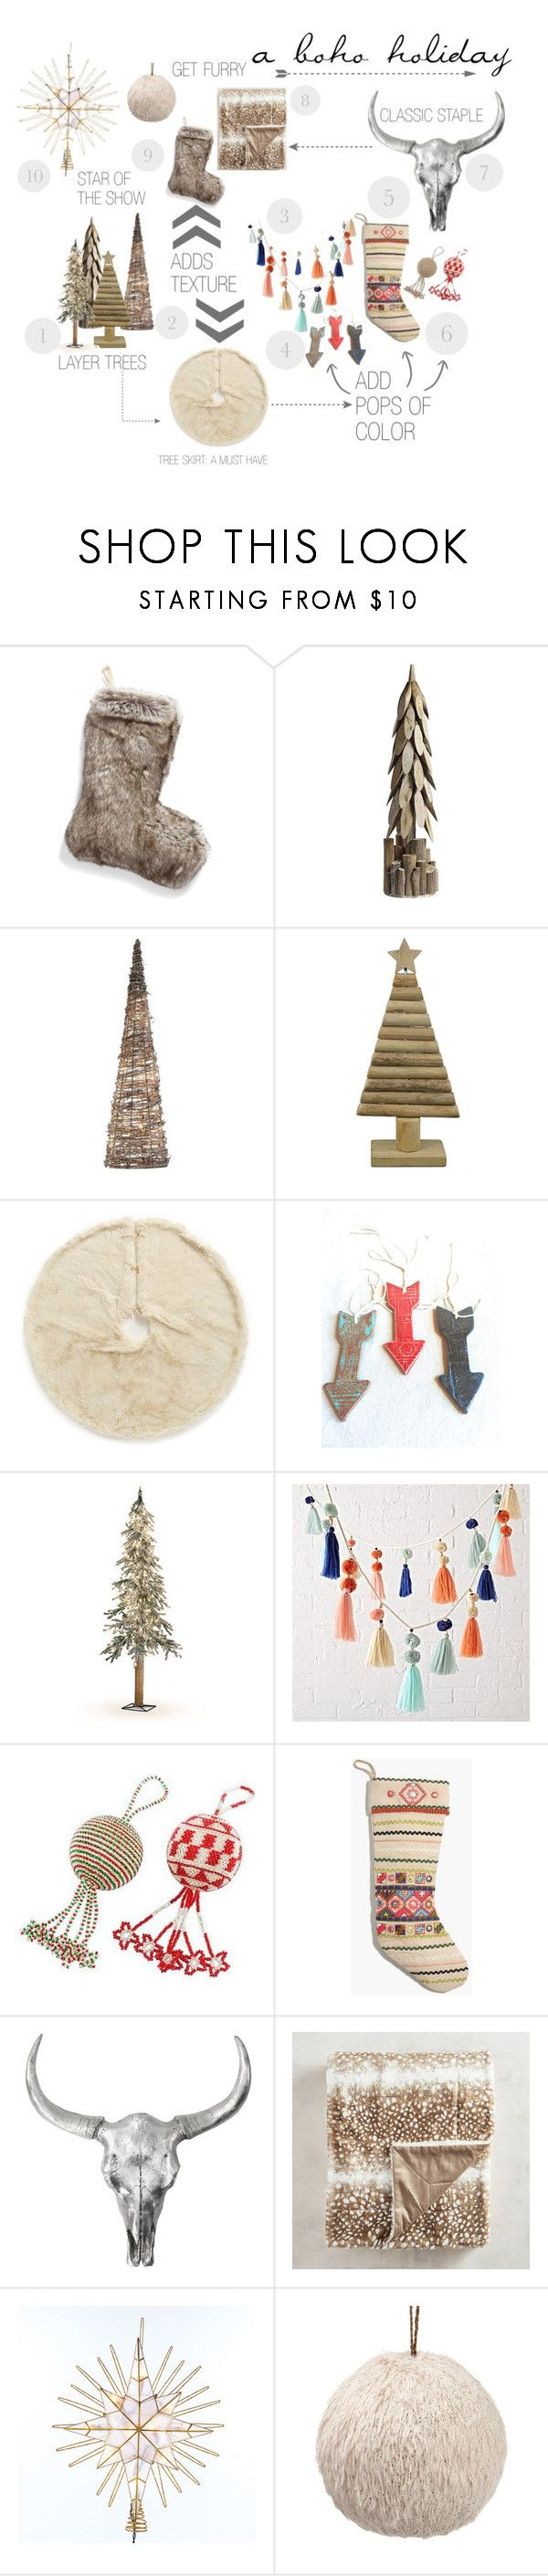 BOHO HOLIDAY DECOR by kenz1029 on Polyvore featuring interior, interiors, interior design, home, home decor, interior decorating, Pier 1 Imports, Nordstrom, Madewell and G.T. Direct